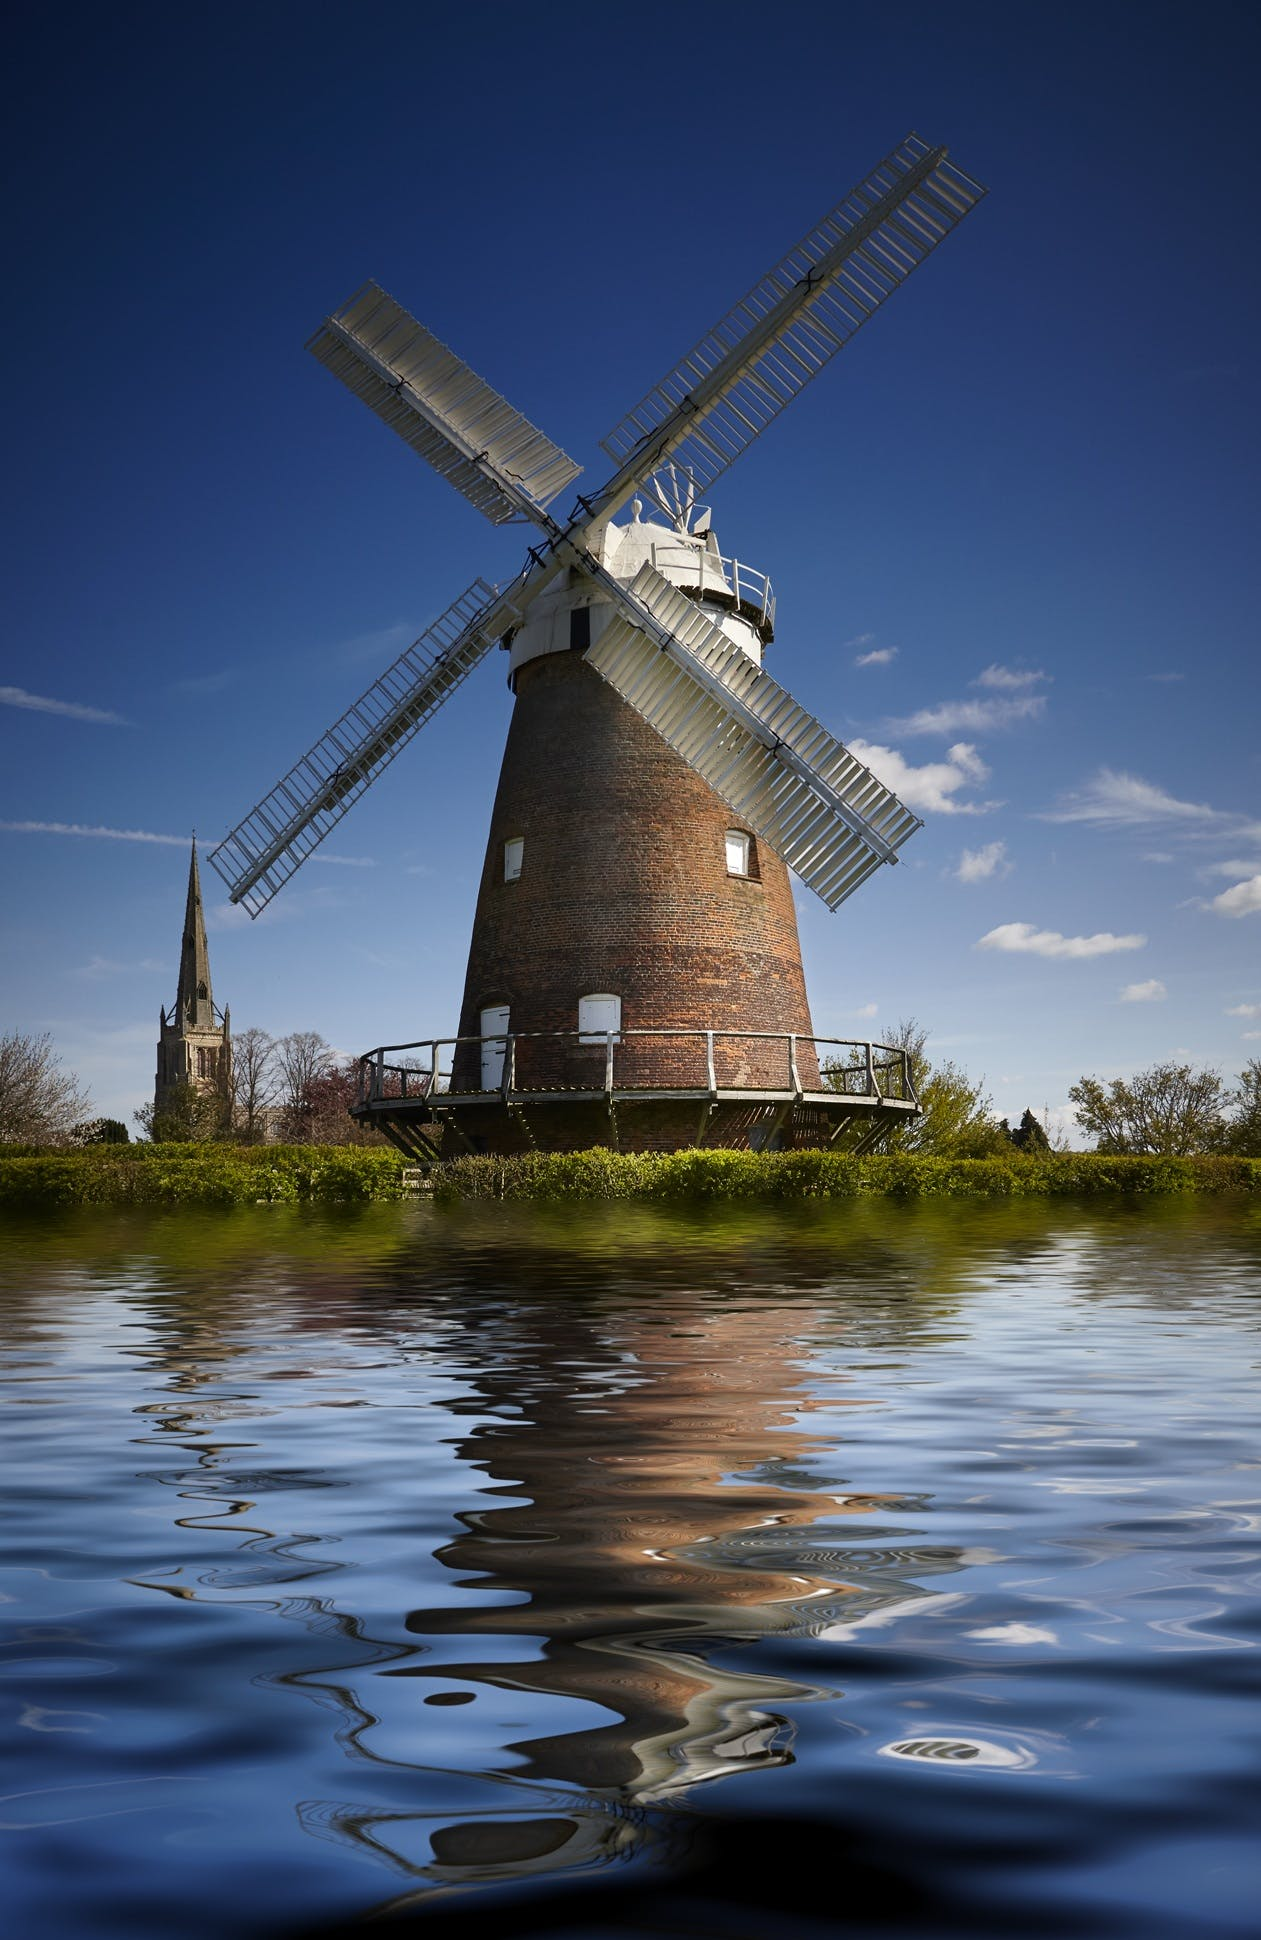 100 Great Windmill Photos & 183 Pexels Free Stock